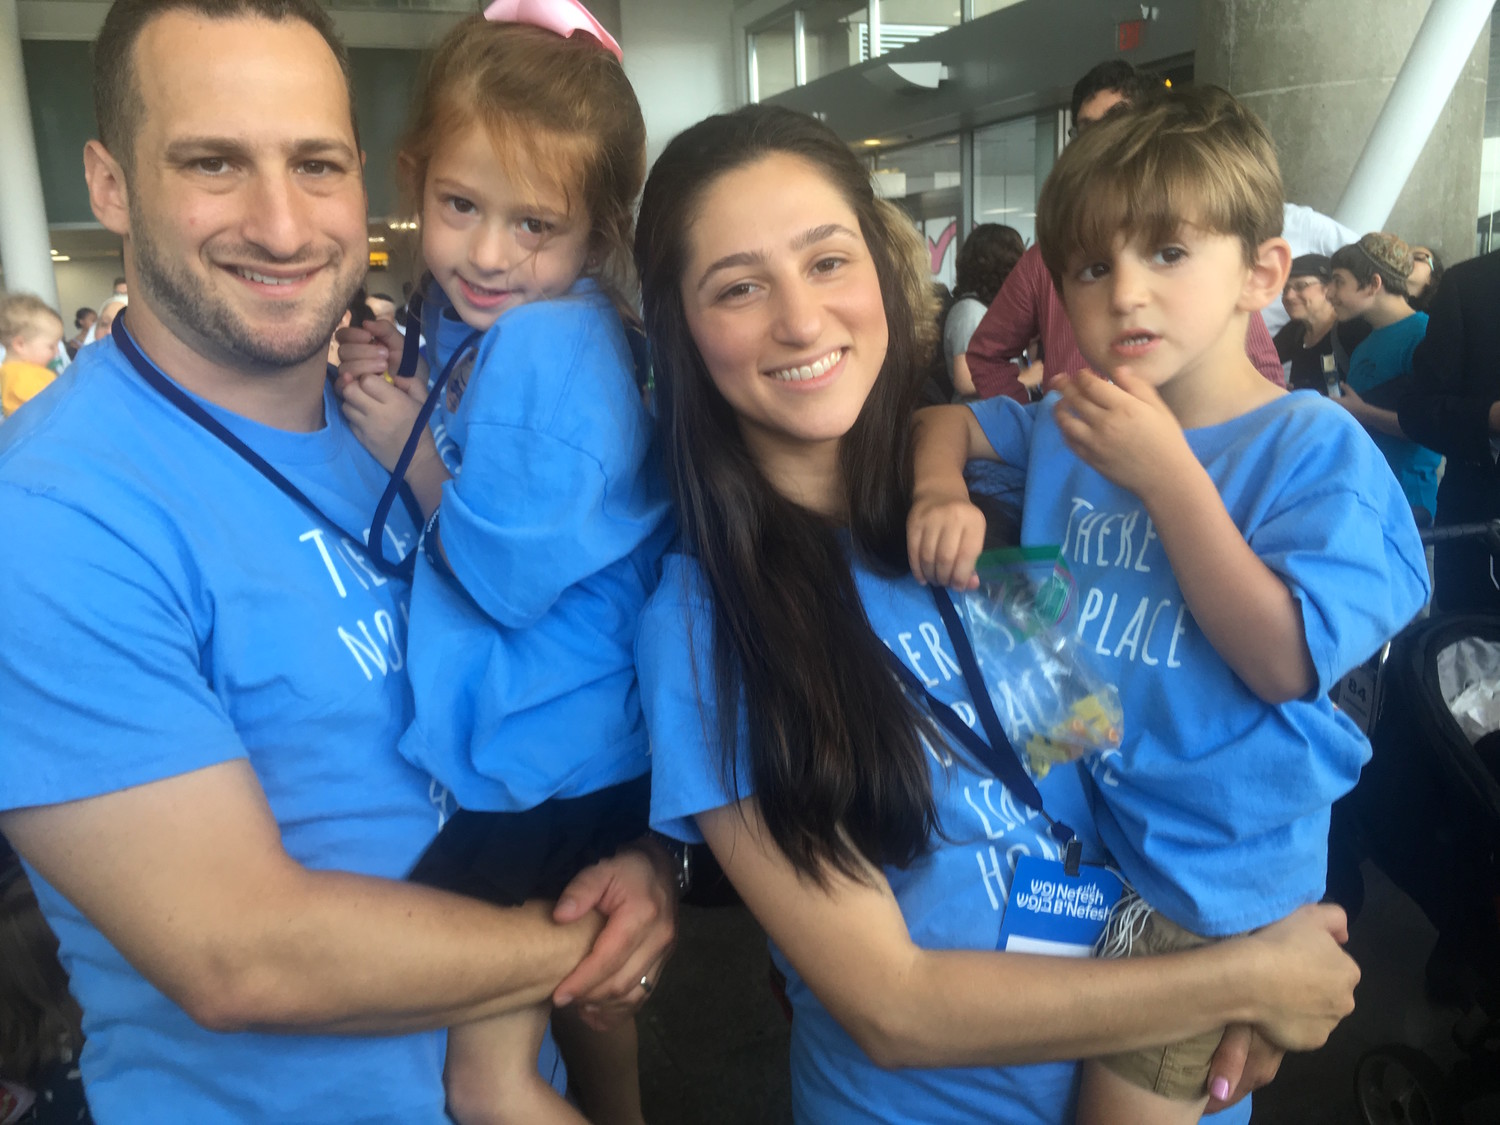 From Kew Gardens Hills, Hanna and Shamshy Schlager and their children —  Azarya, 3, and Adella, 5 — ready to board Tuesday's aliyah flight.